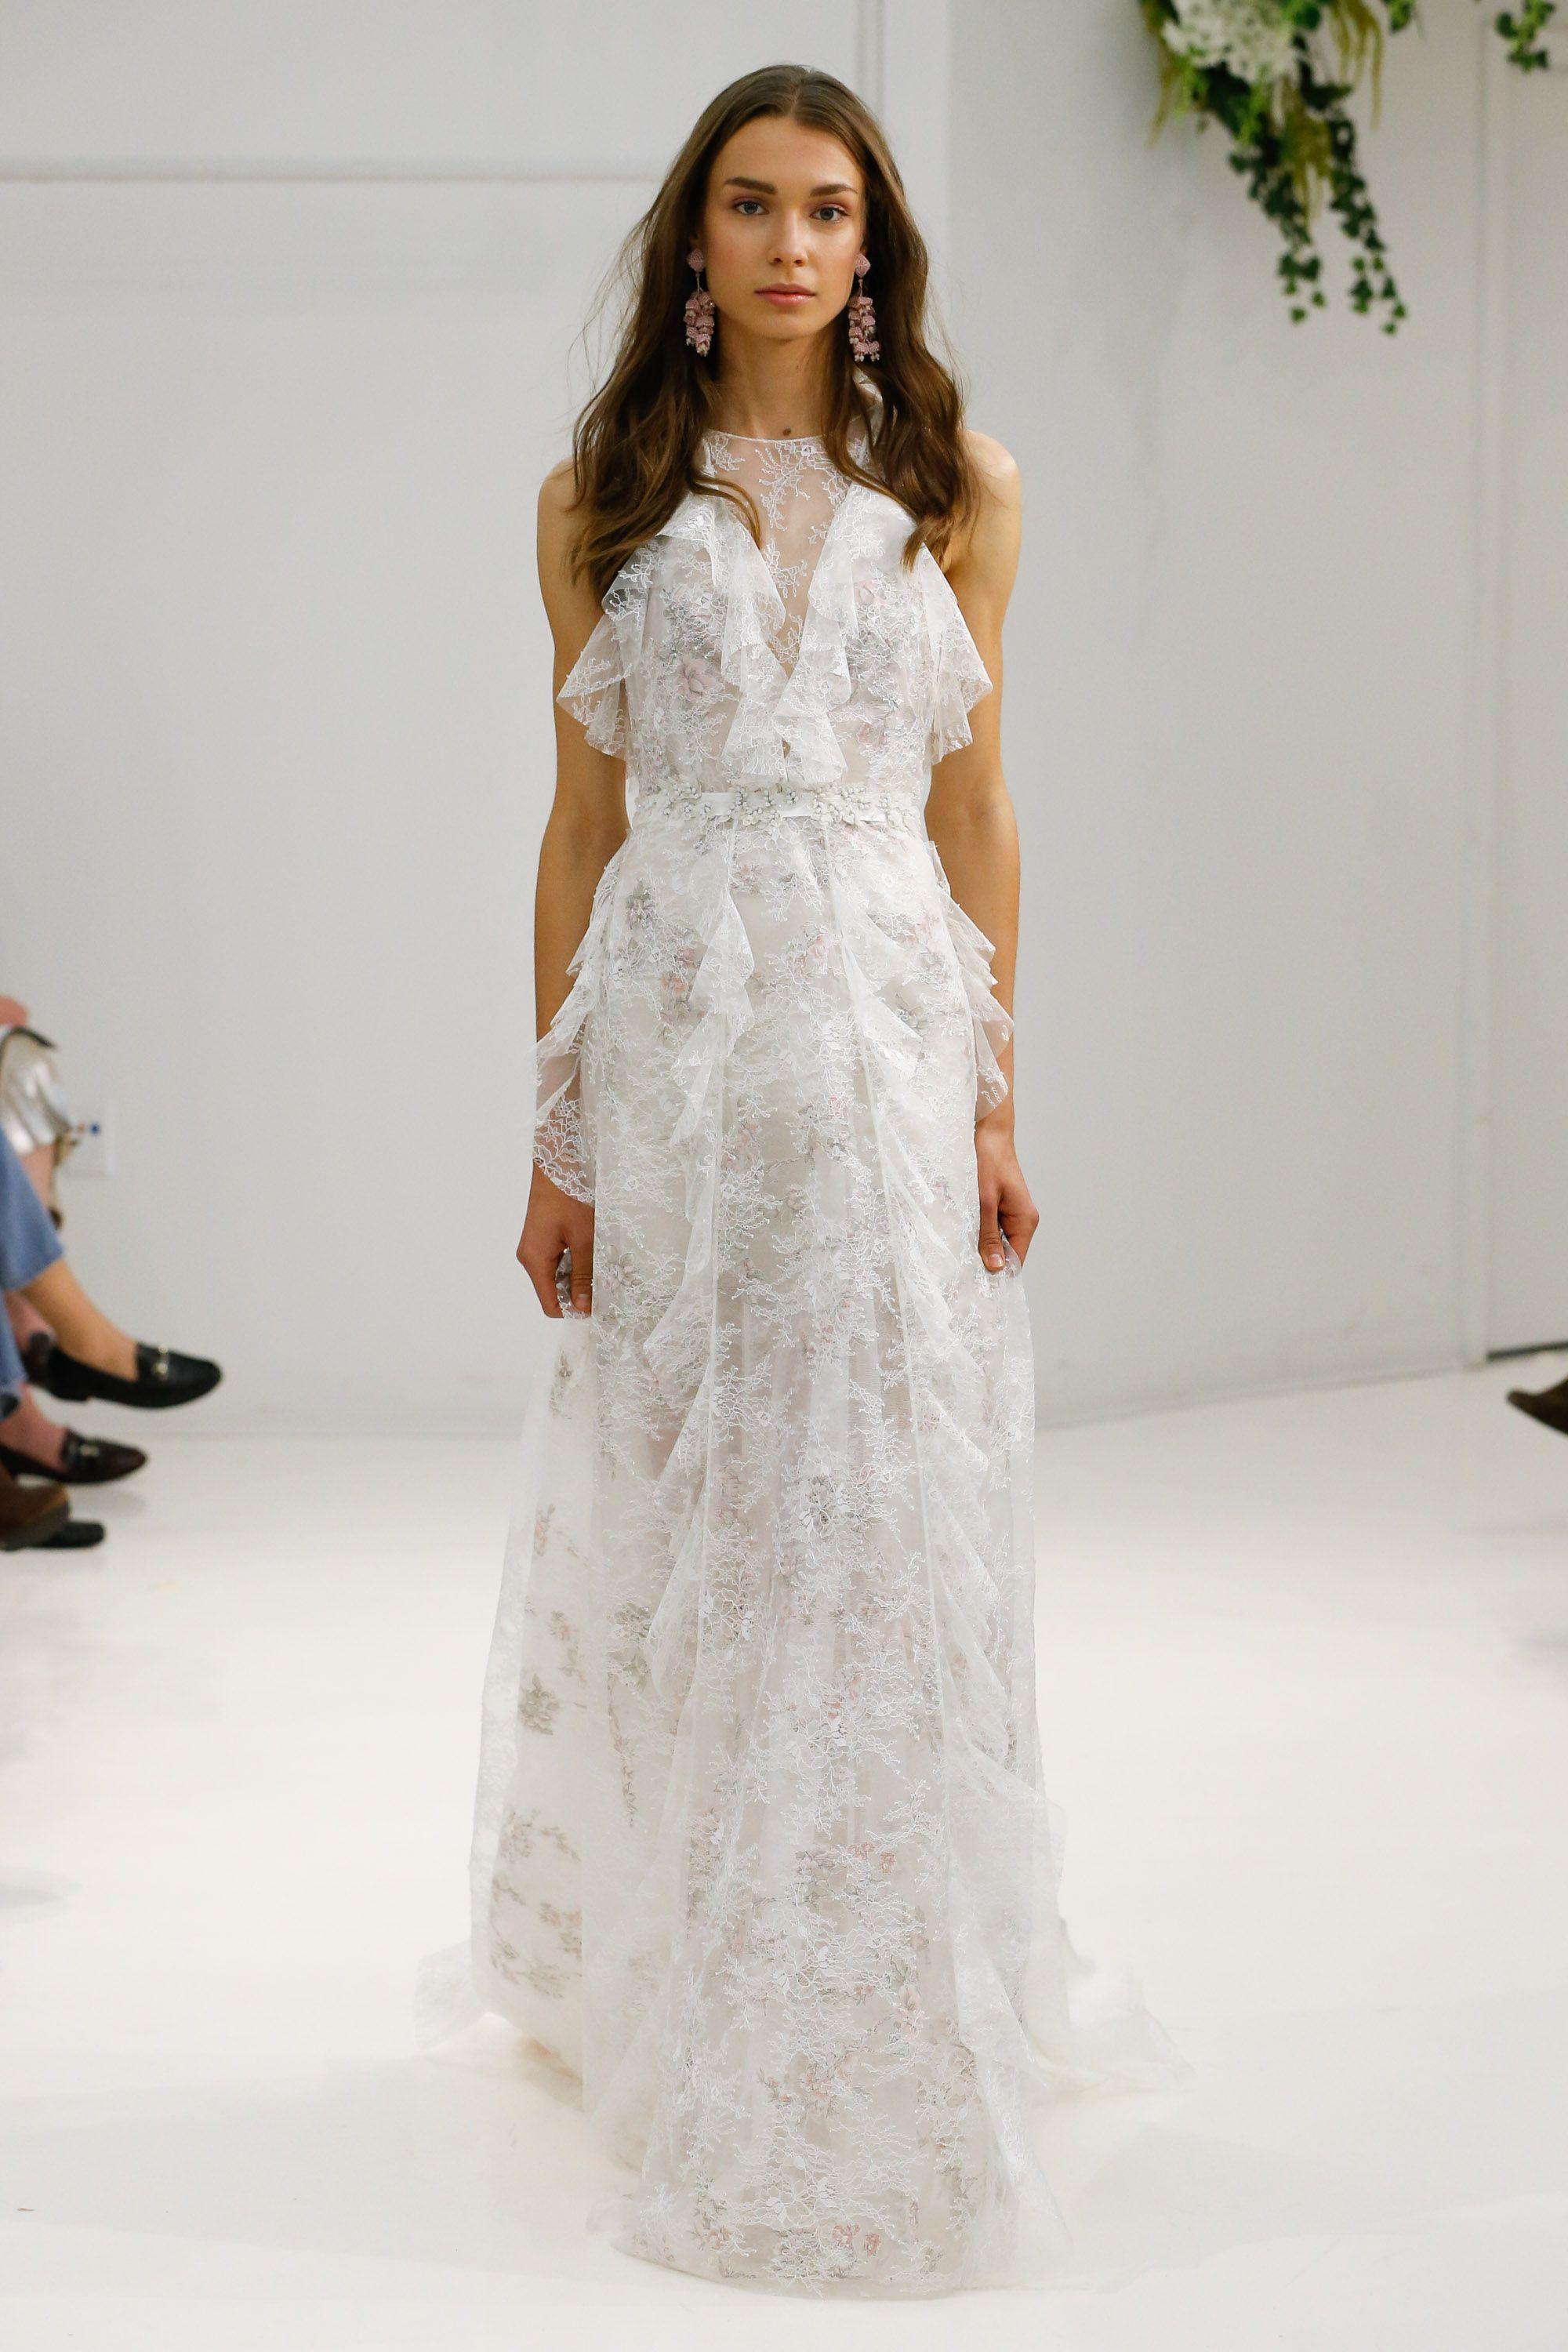 The most beautiful wedding dresses from New York Bridal Fashion